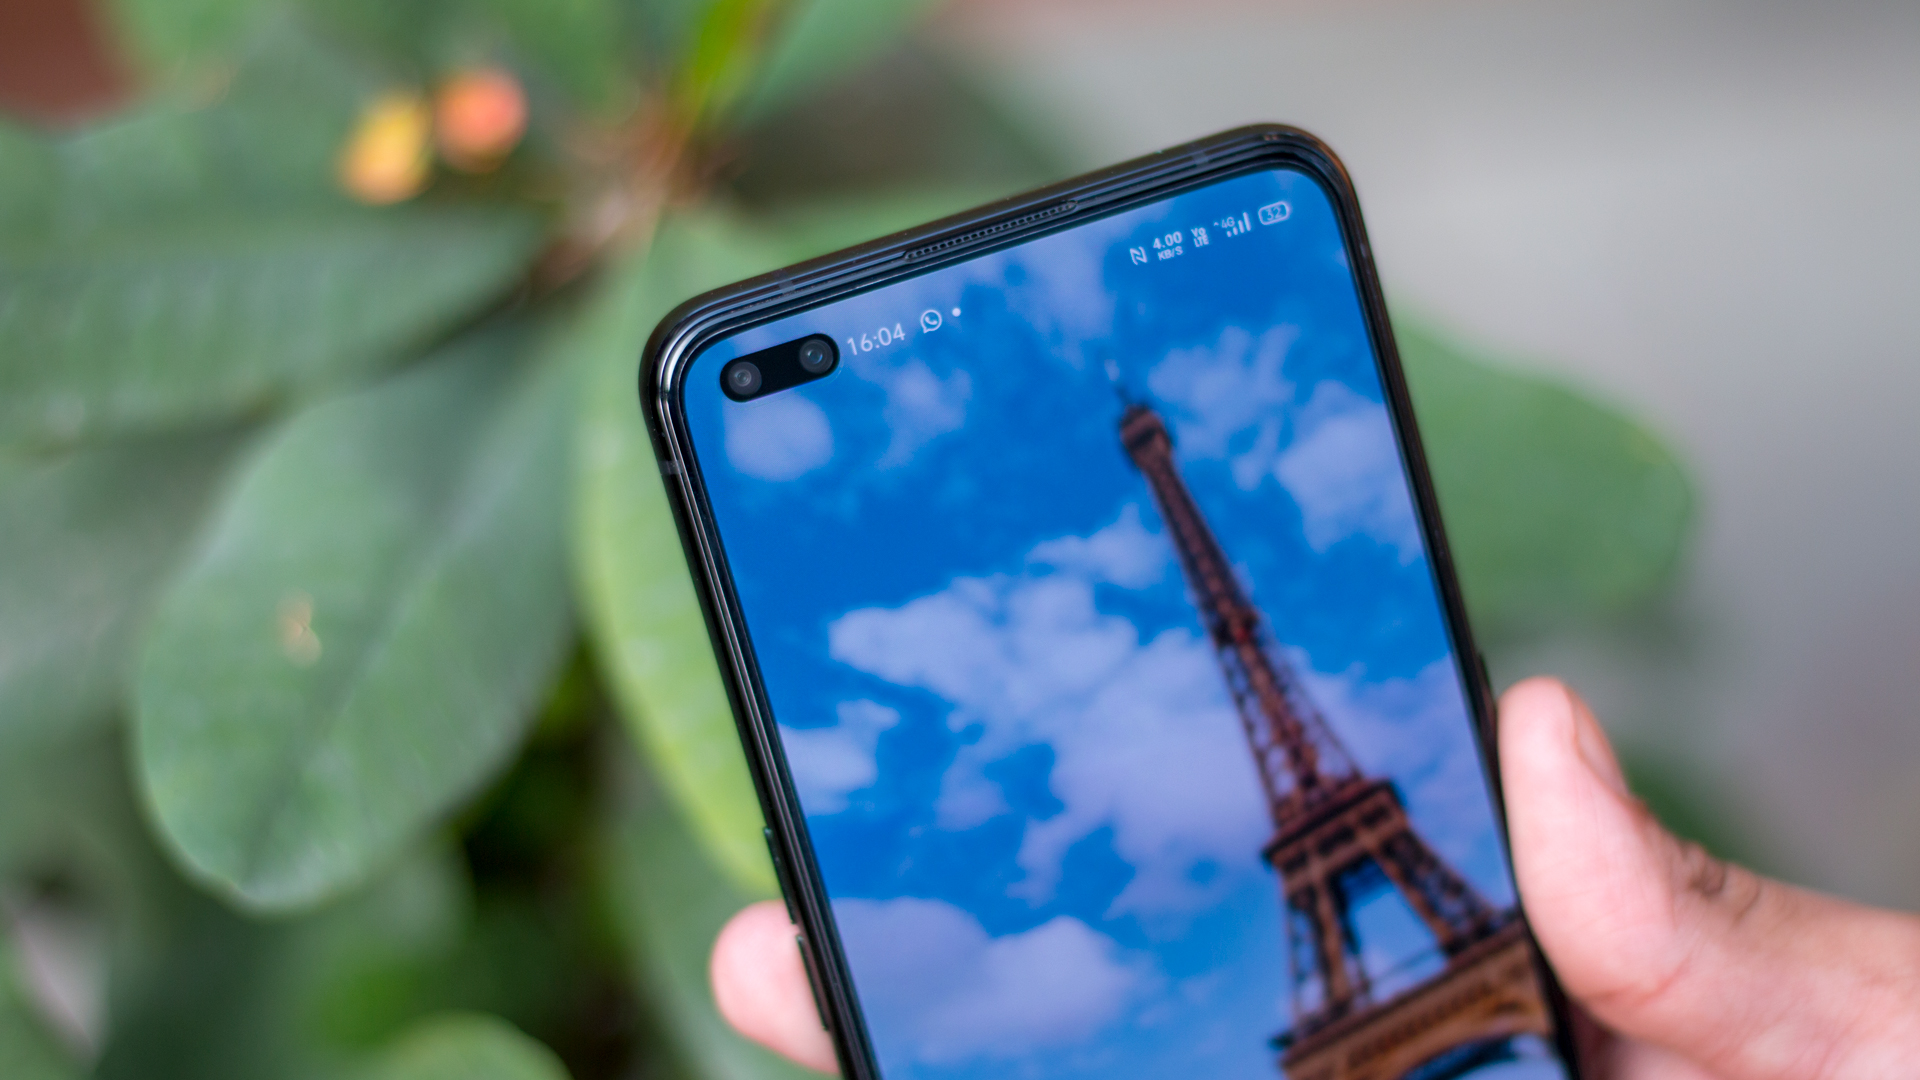 Realme X3 5g Specifications And Images Appear On Tenaa Smartprix Com